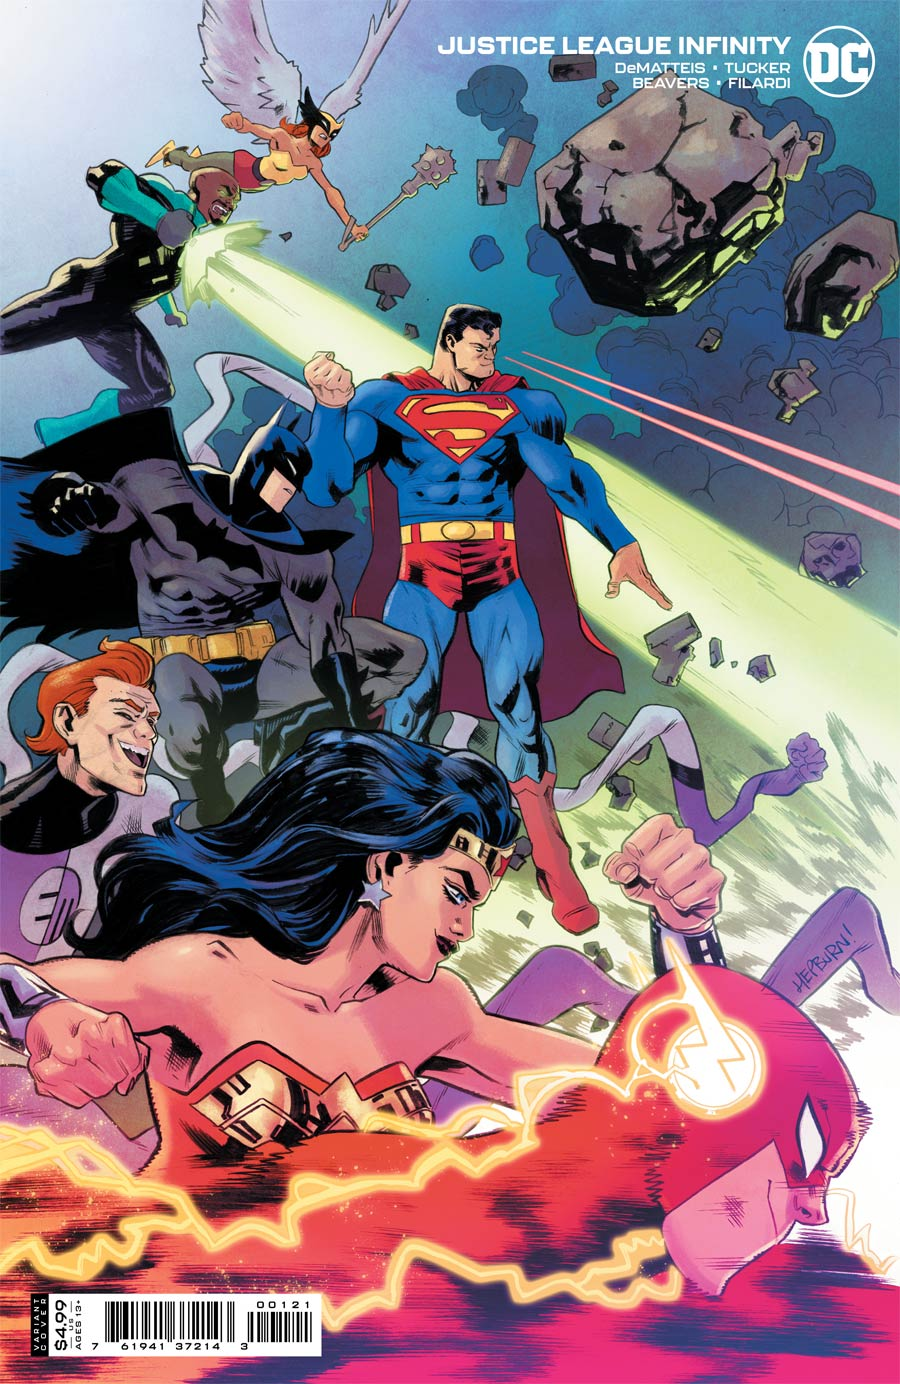 Justice League Infinity #1 Cover B Variant Scott Hepburn Card Stock Cover